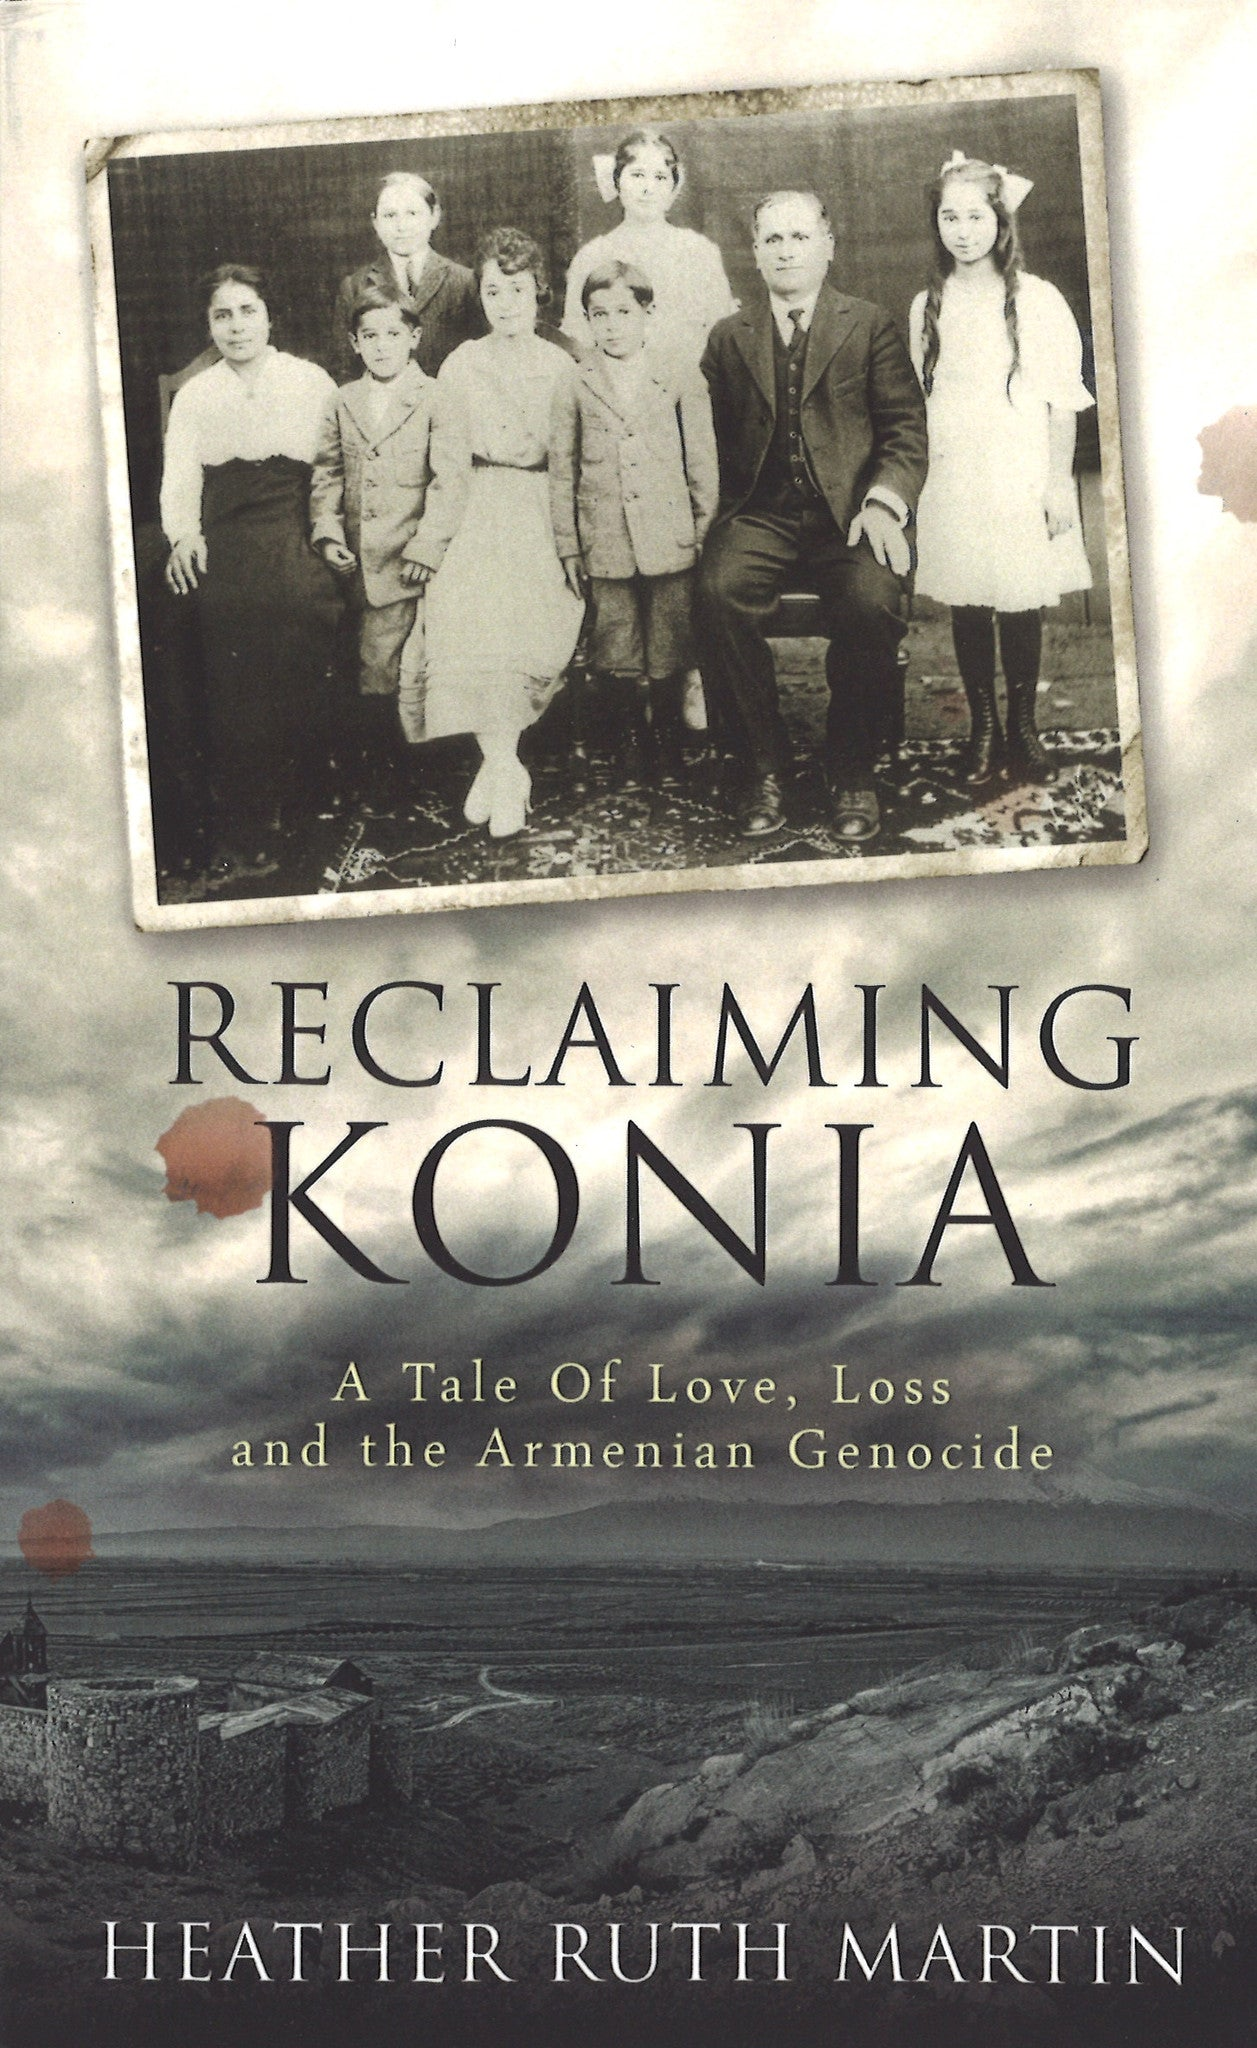 RECLAIMING KONIA: A Tale of Love, Loss and the Armenian Genocide